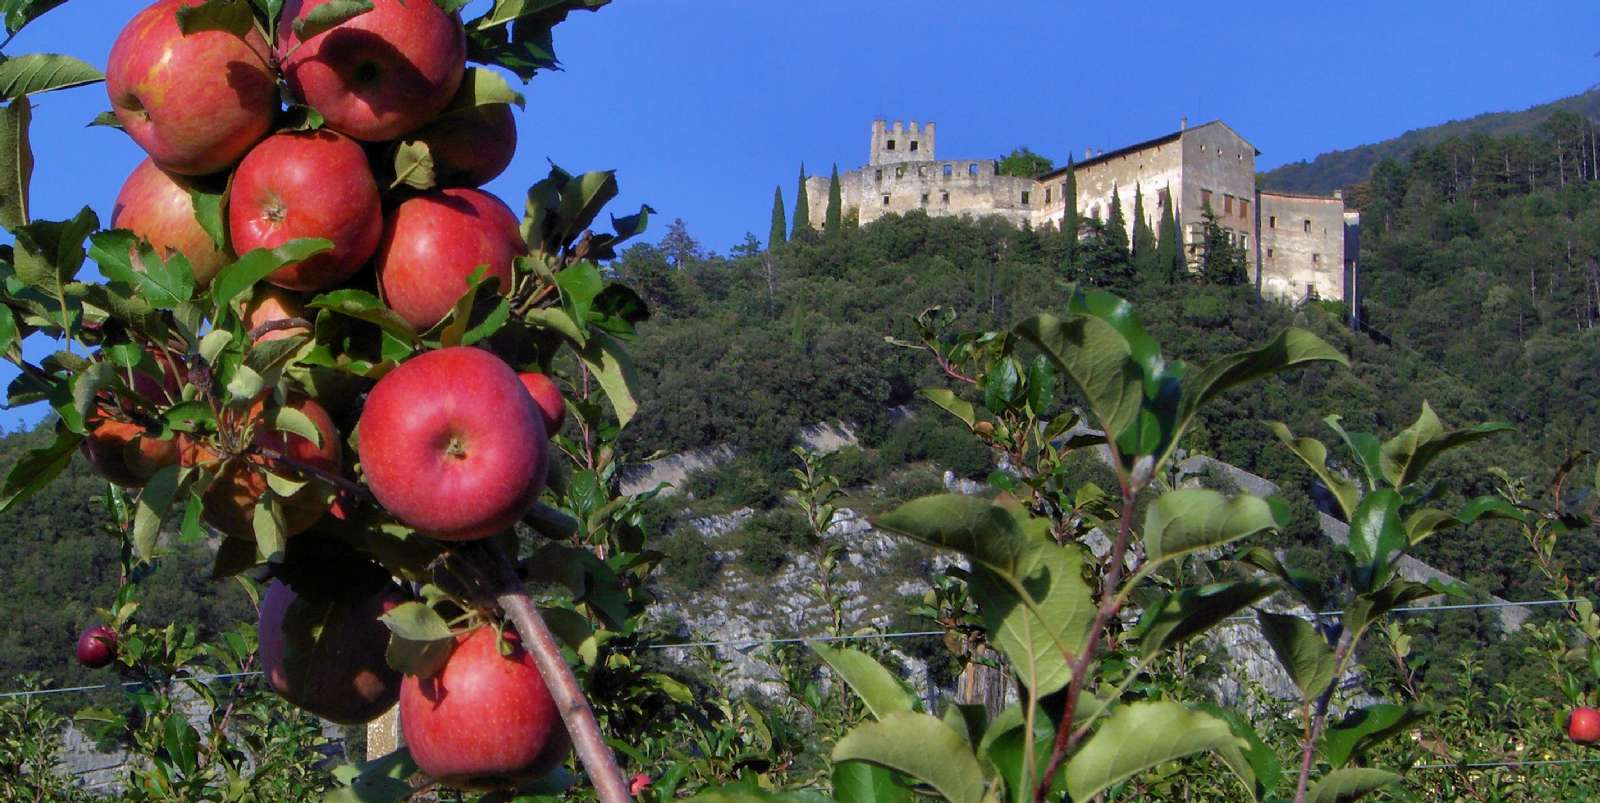 The region produces large quantities of apples